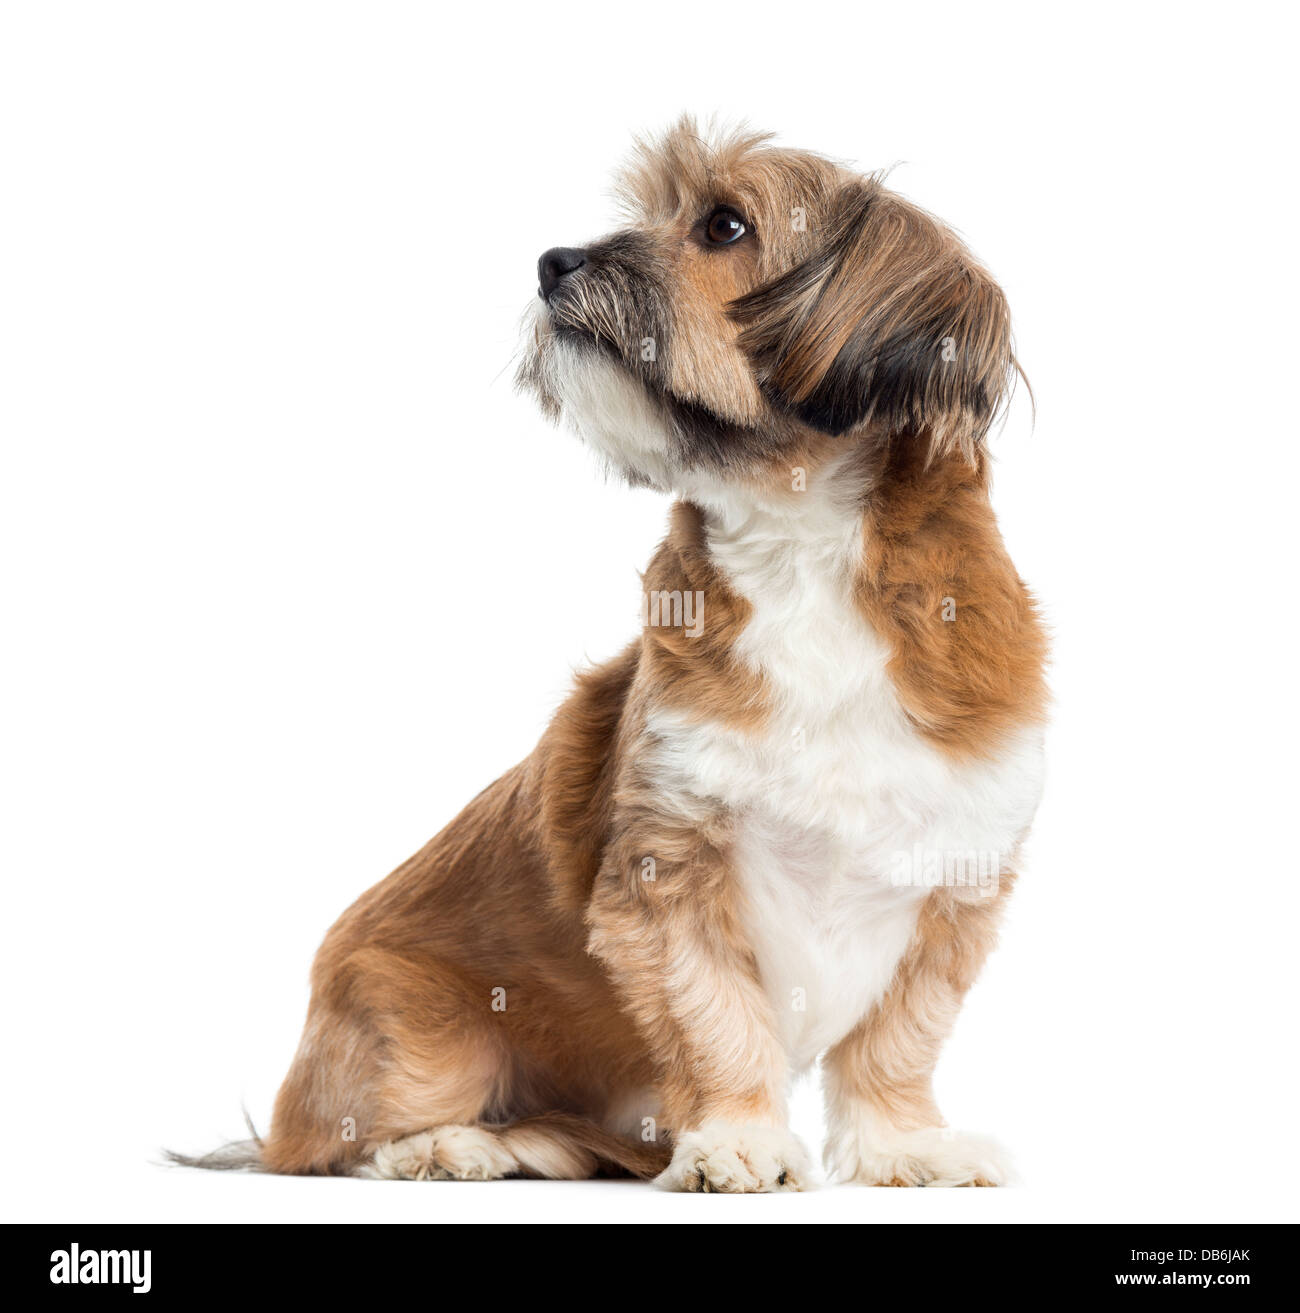 Lhassa apso sitting and looking away against white background - Stock Image